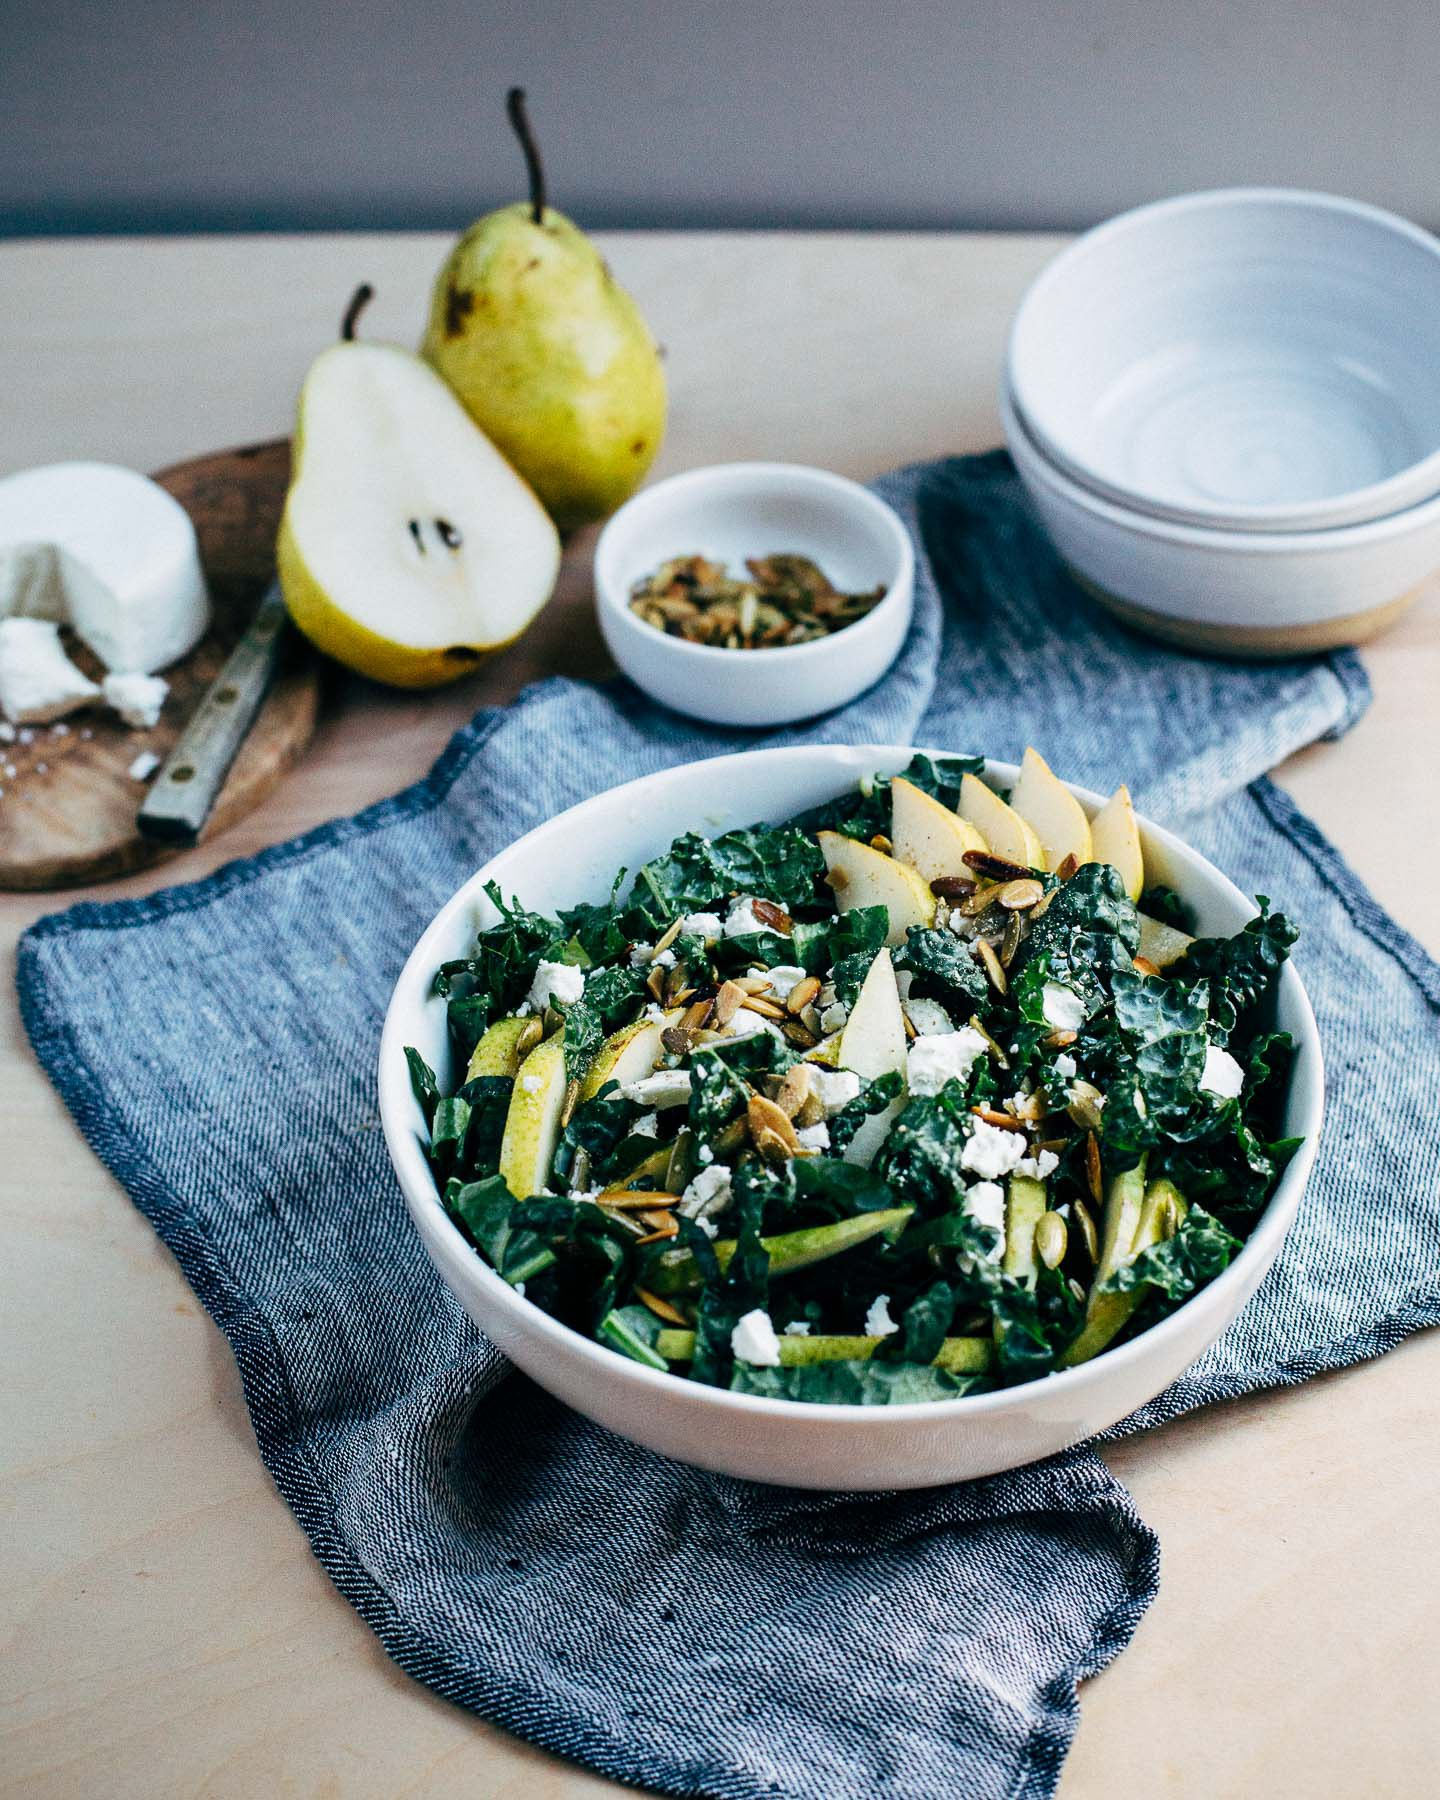 kale-salad-with-pears12